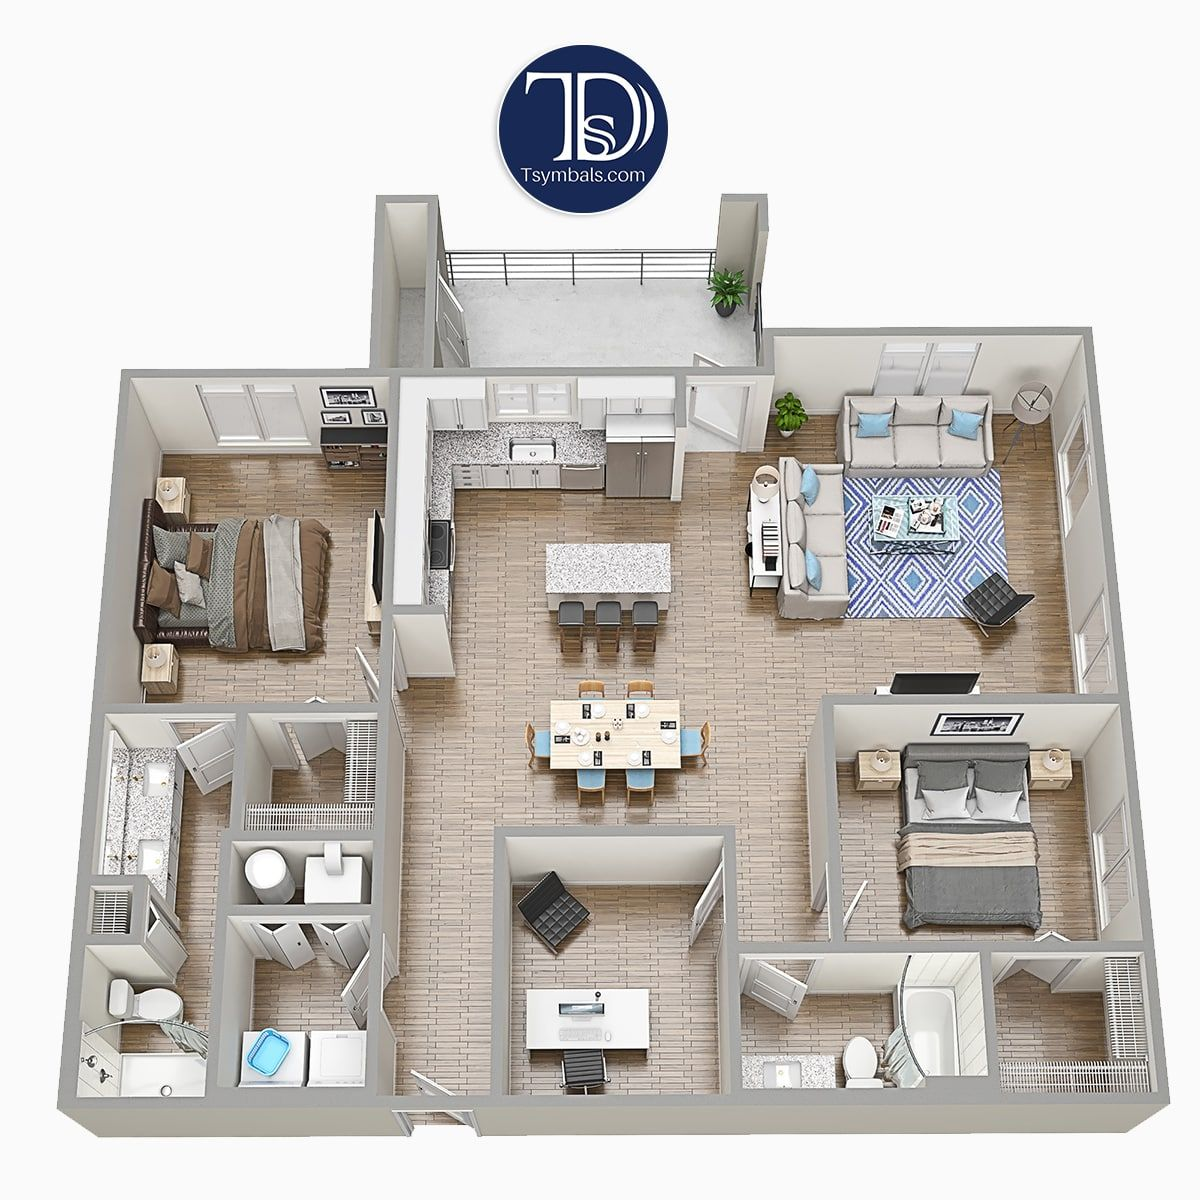 3D Floor Plans - Renderings & Visualizations in 2020 ...